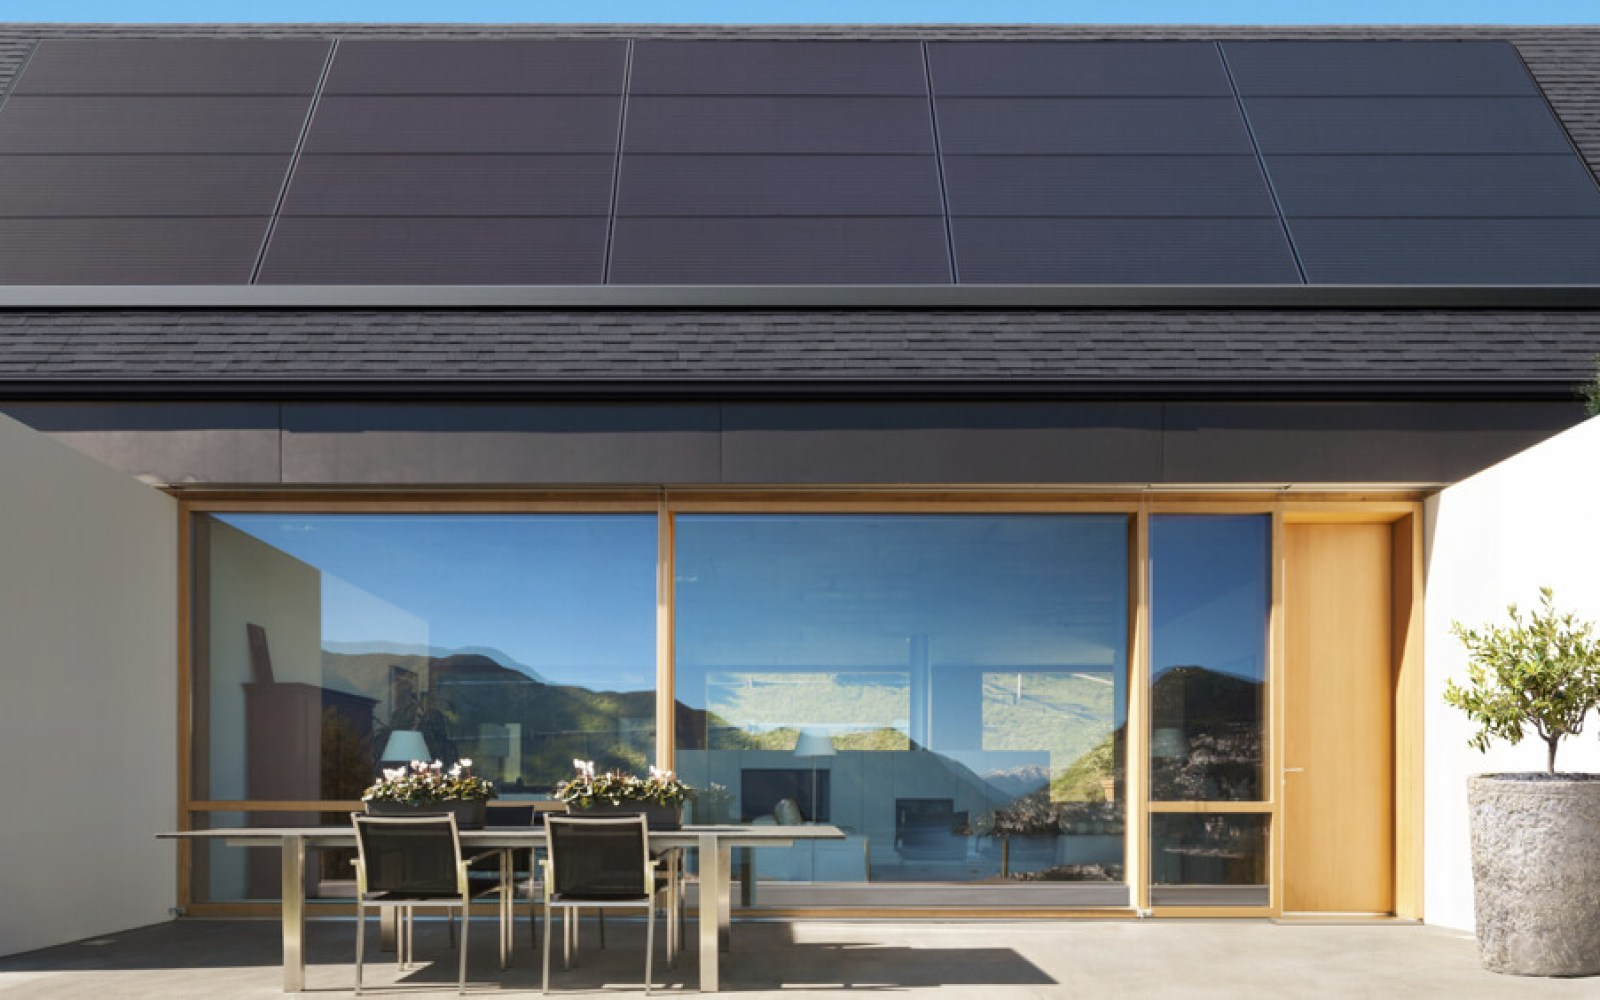 Tesla unveils its new 'sleek and low-profile' exclusive solar panel made by Panasonic